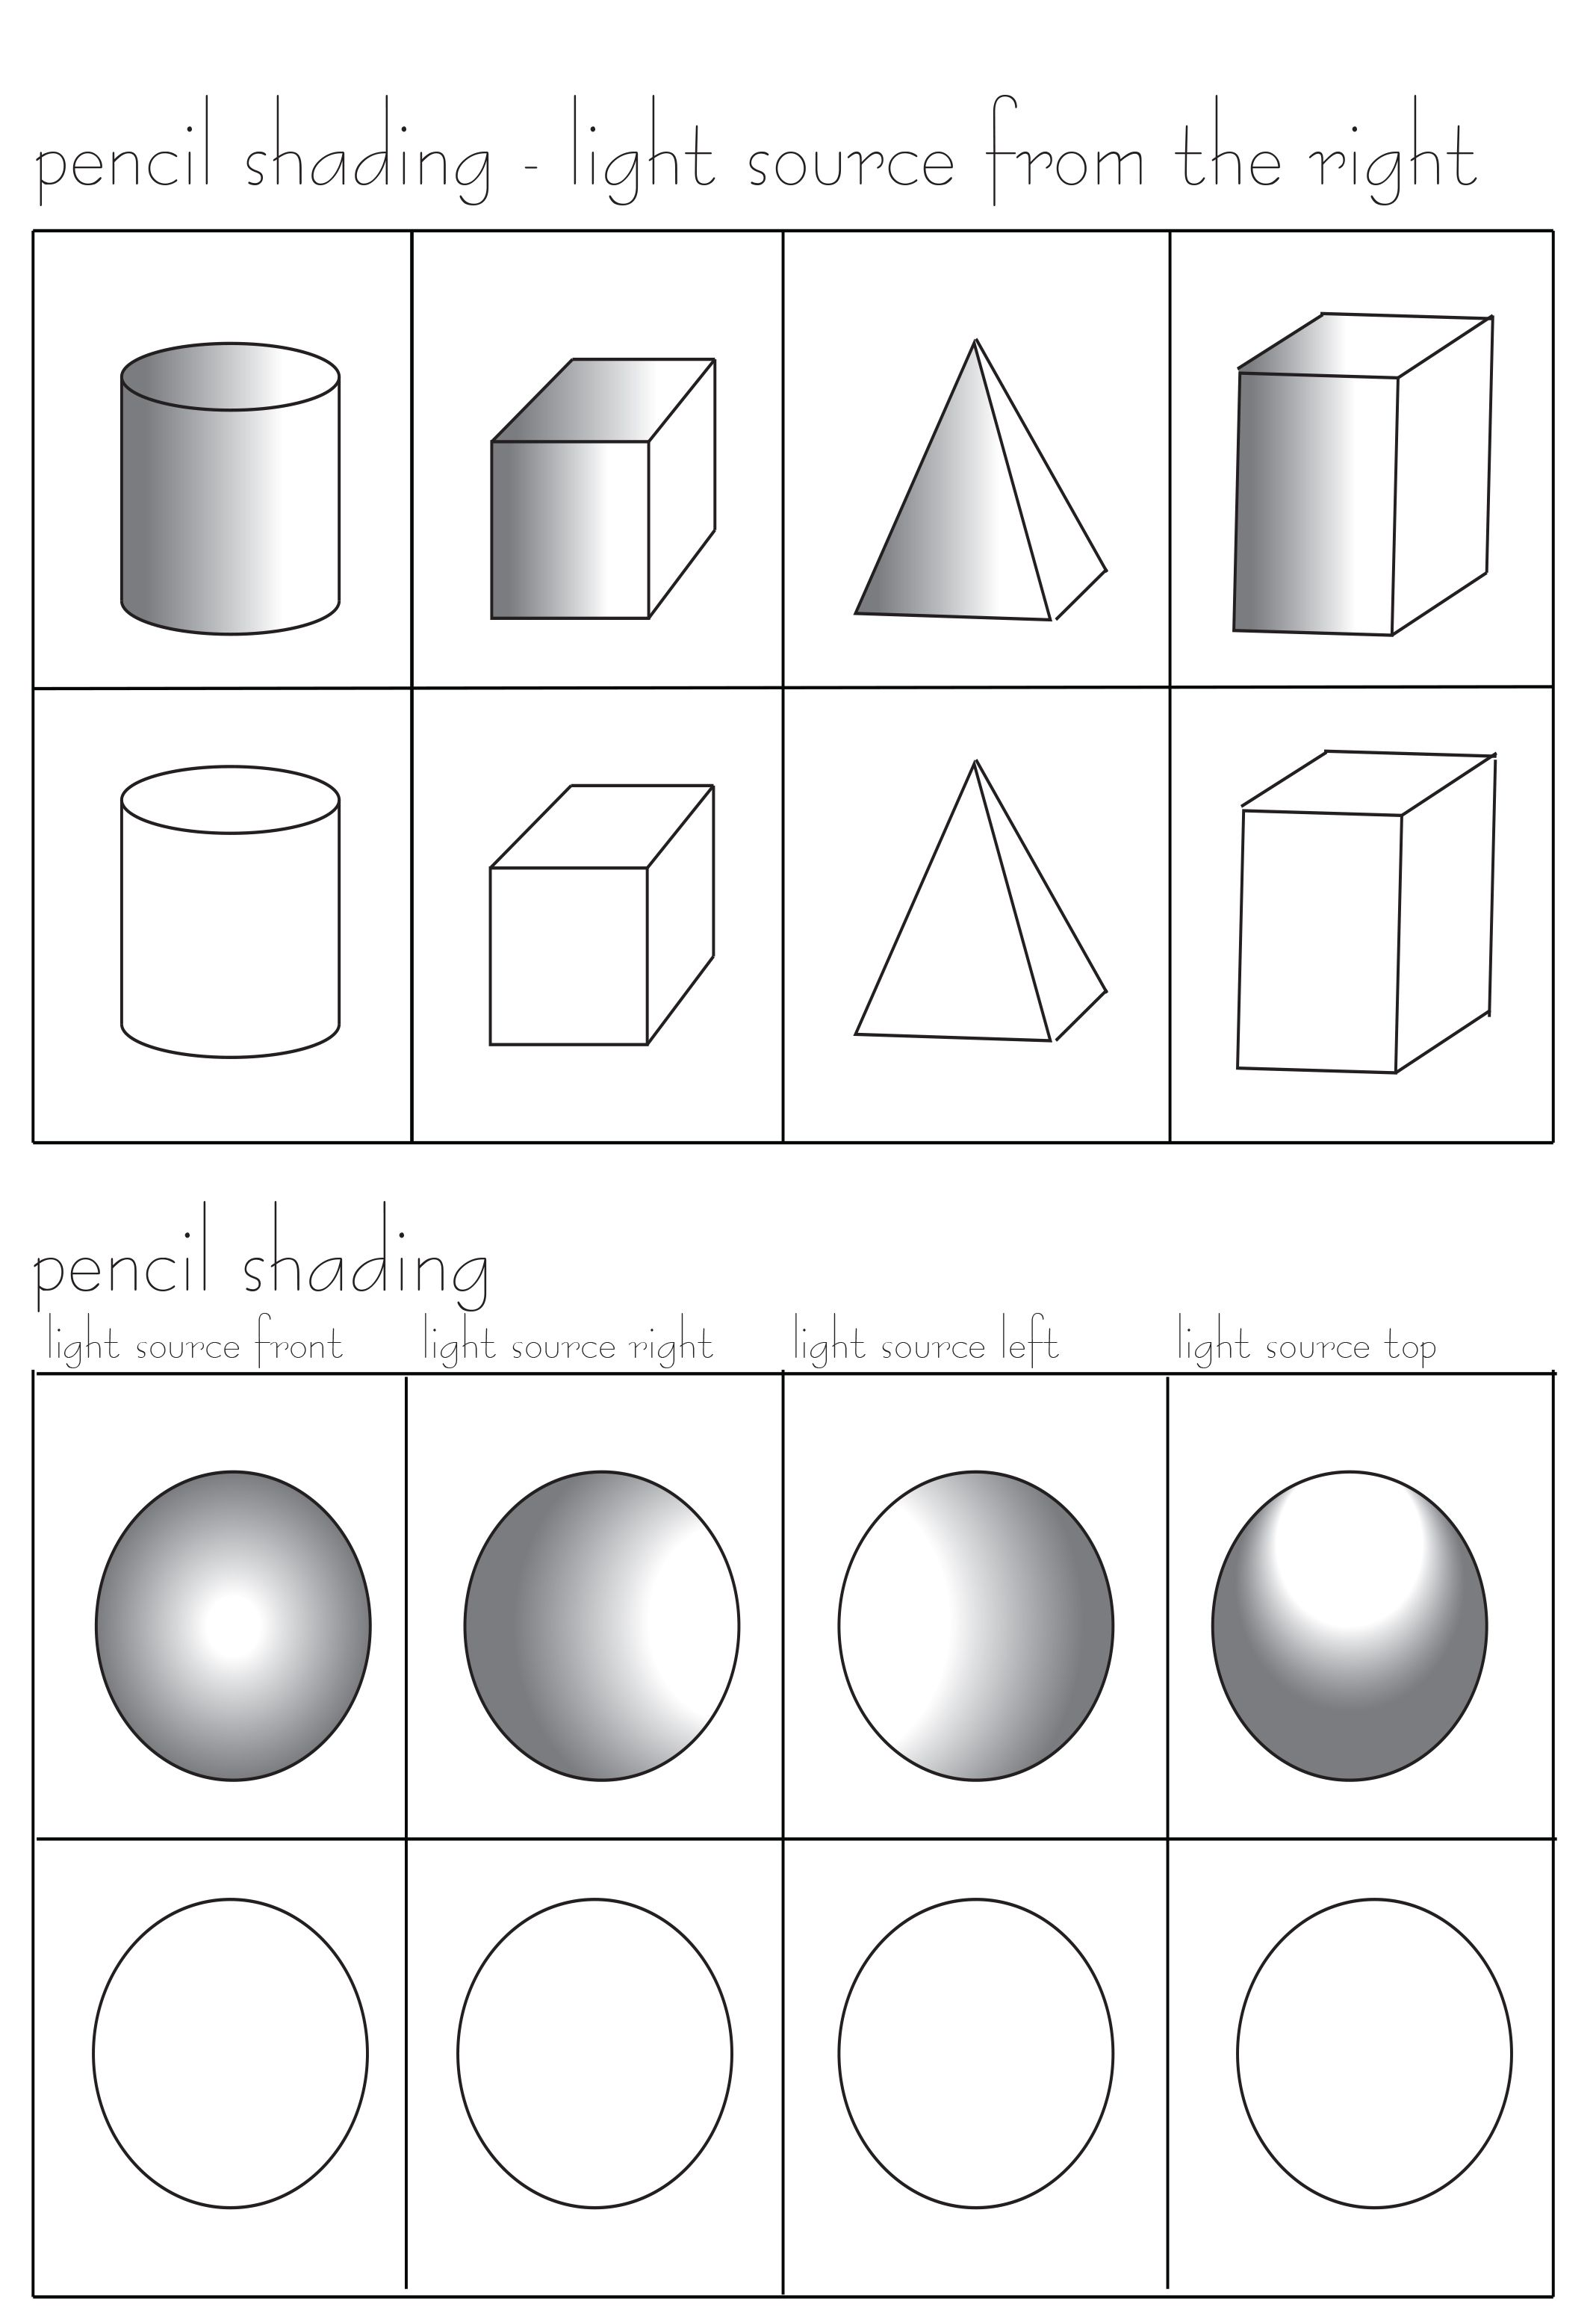 Worksheets Ight Worksheets pencil shading worksheet free at httpwww teacherspayteachers free